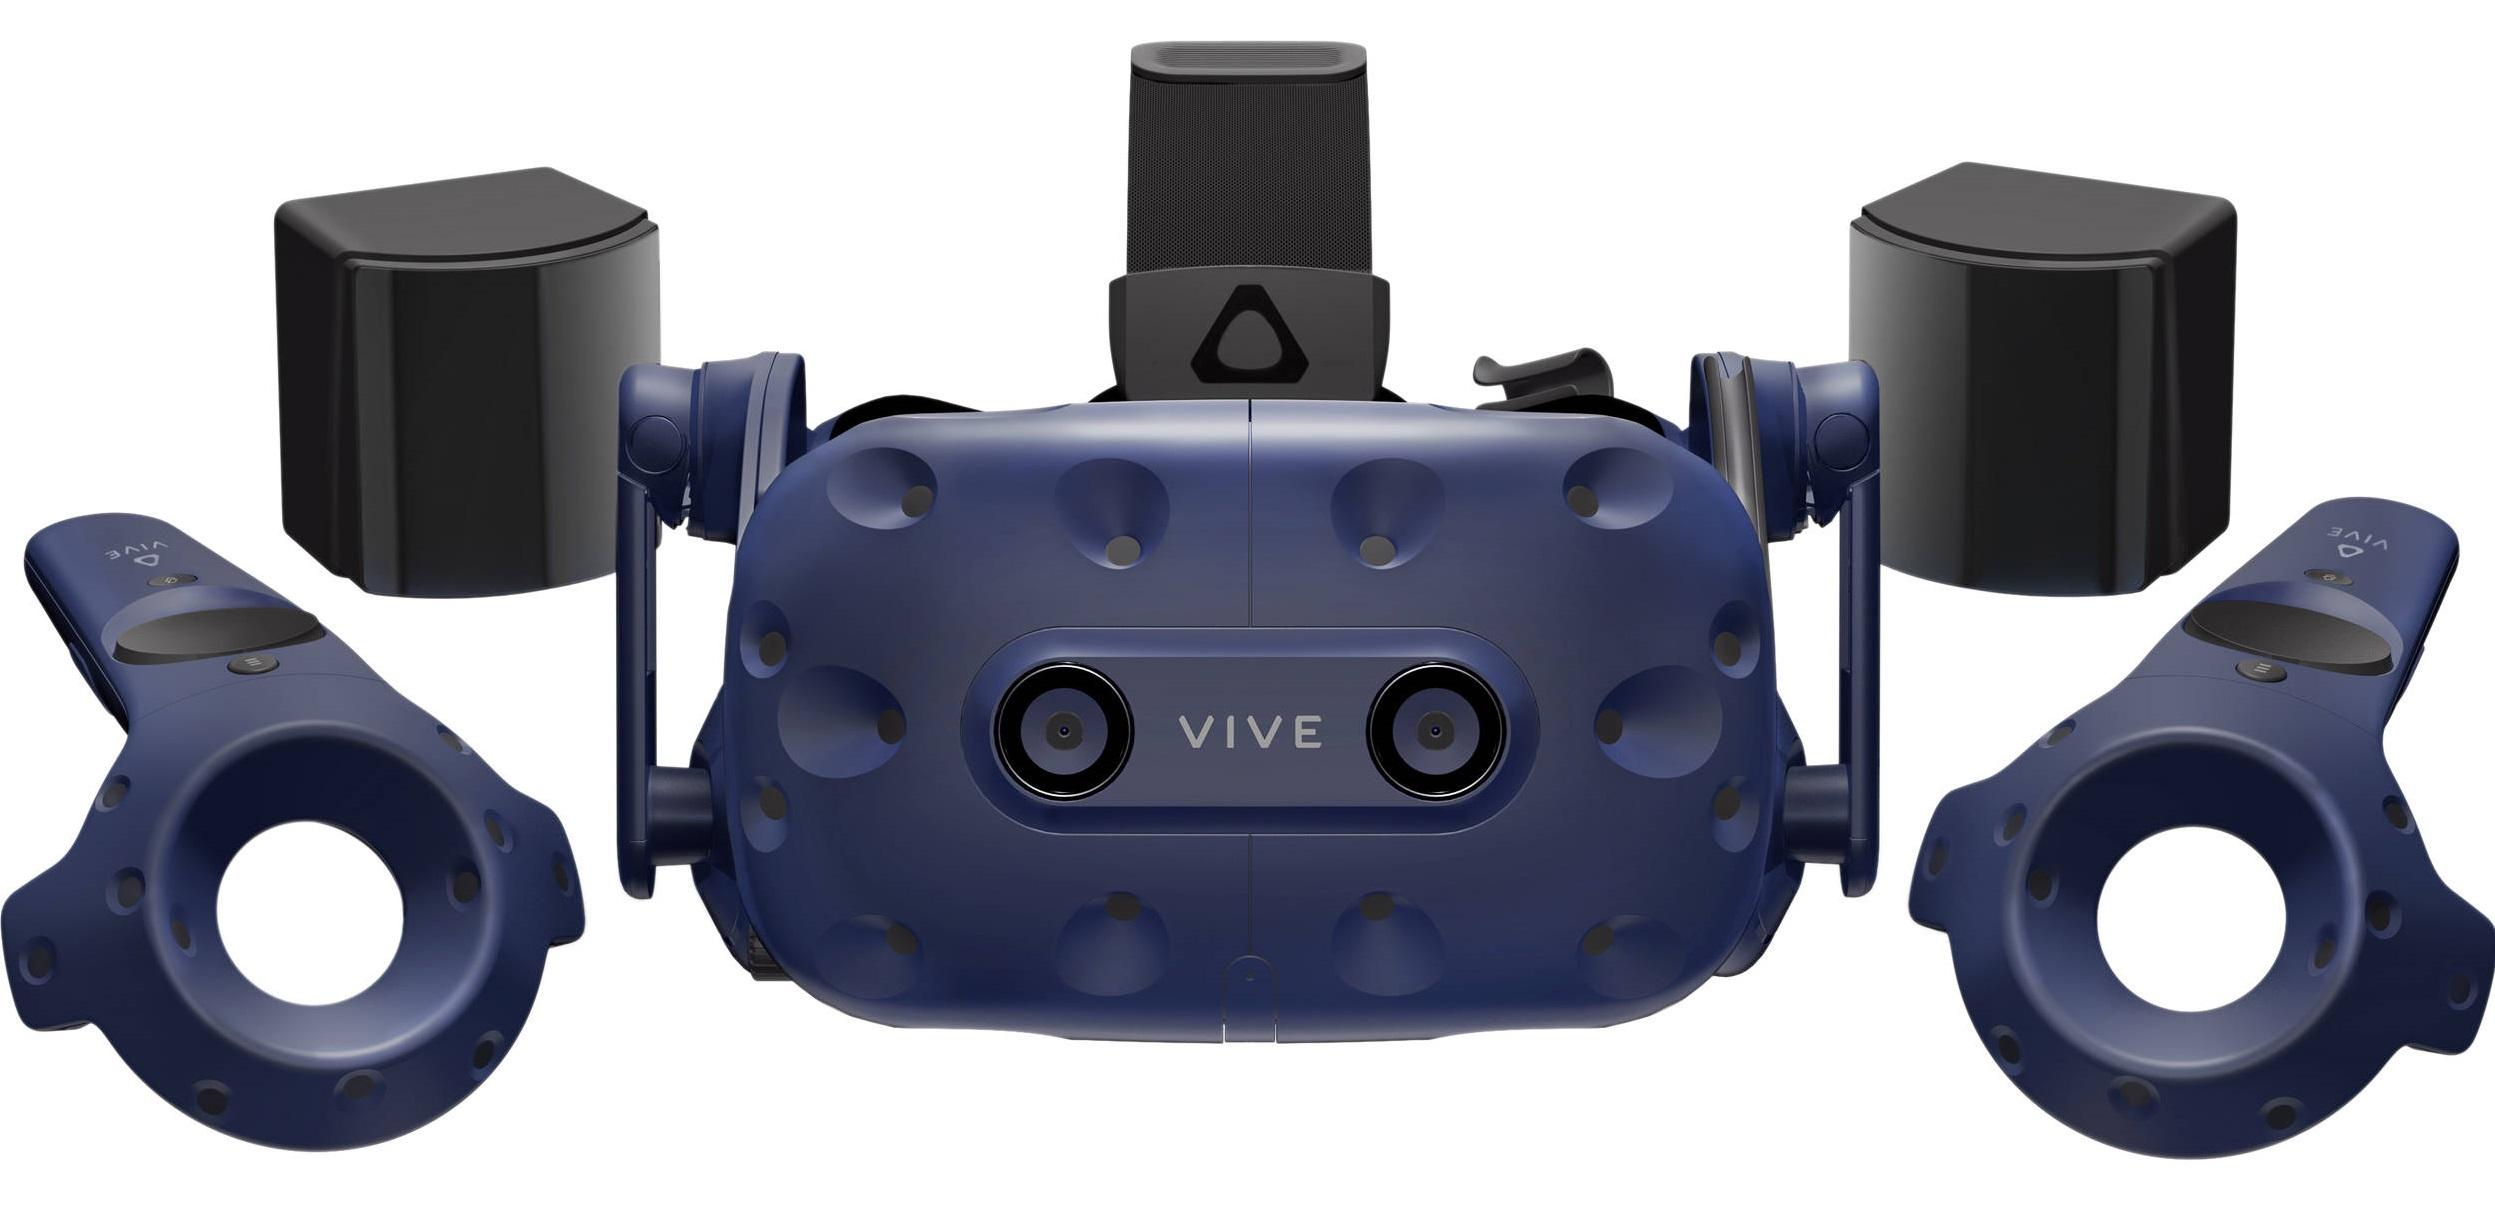 HTC Vive Pro with headset, controllers, and base stations